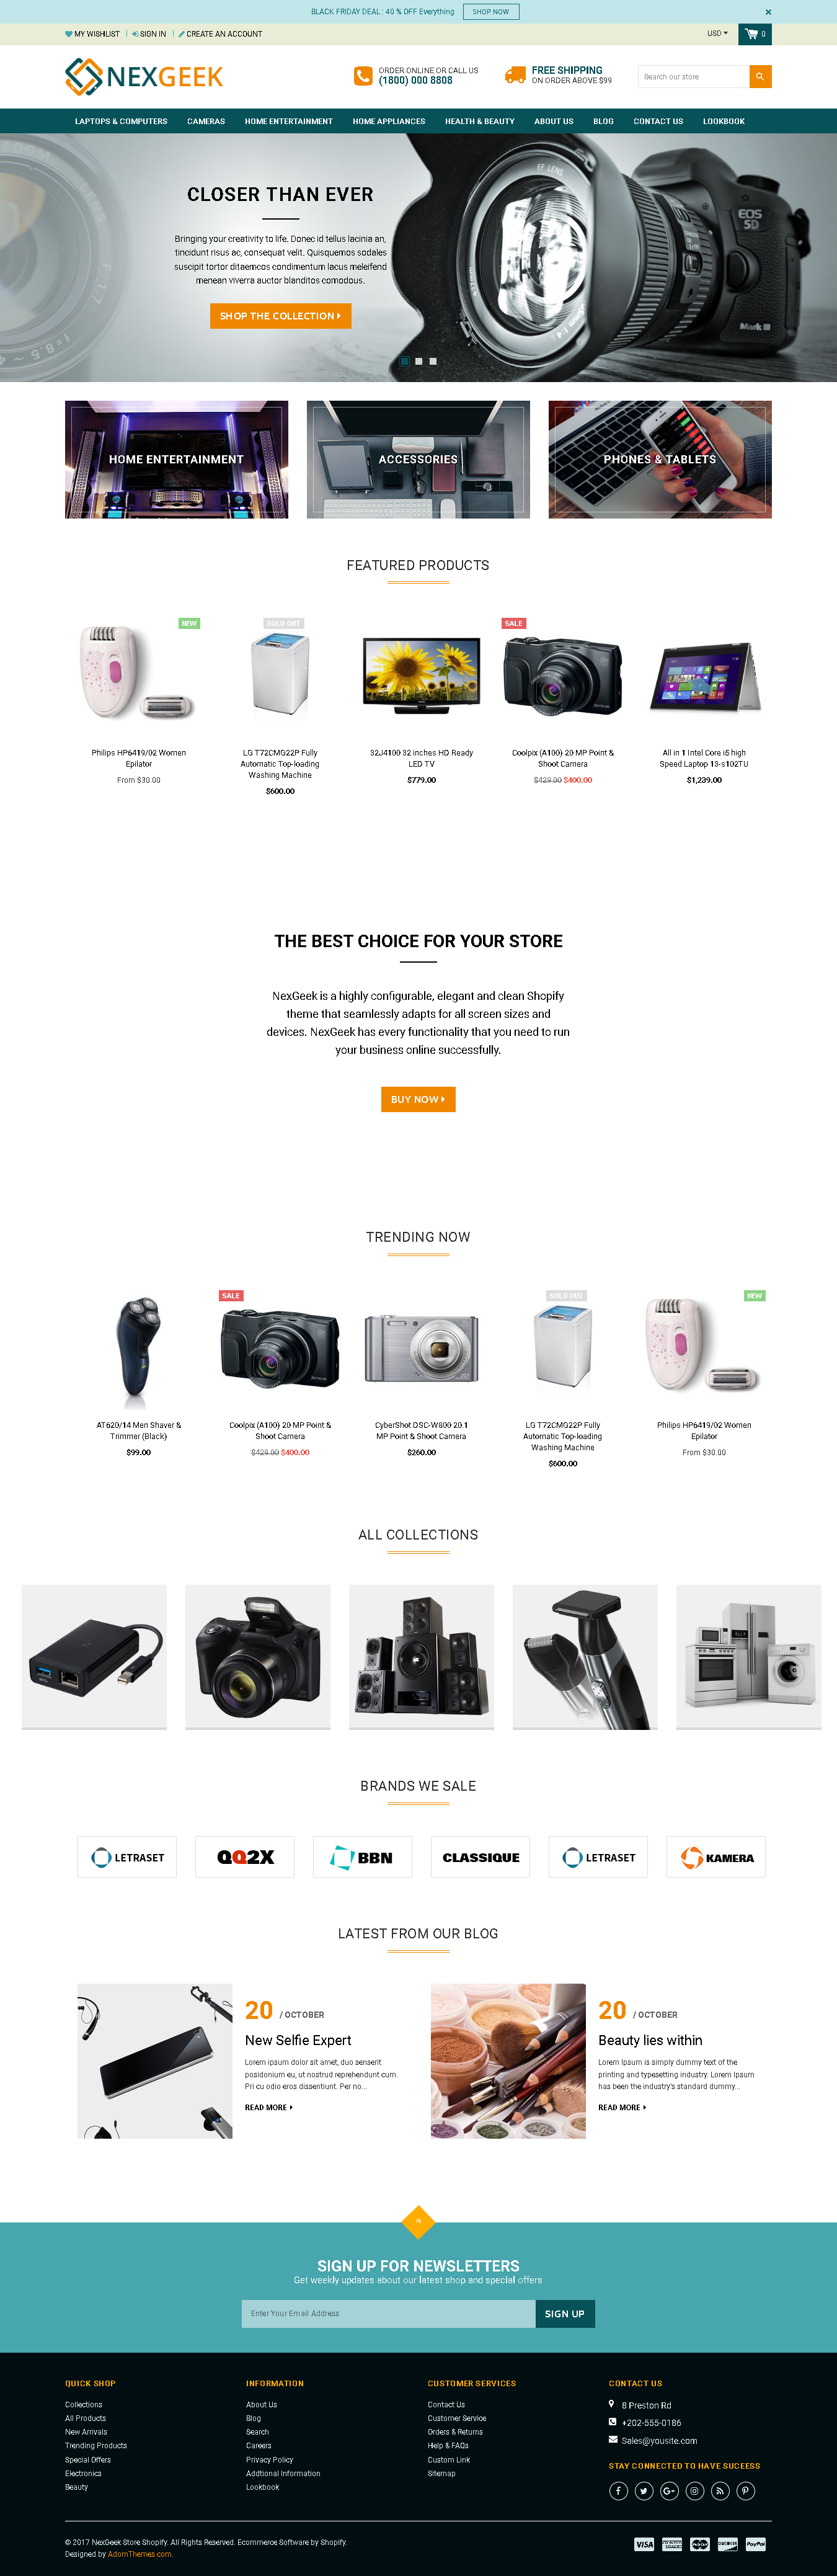 Top 5 Shopify Themes for Selling Digital Products - NexGeek-Multipurpose Responsive Theme for gadget and digital store